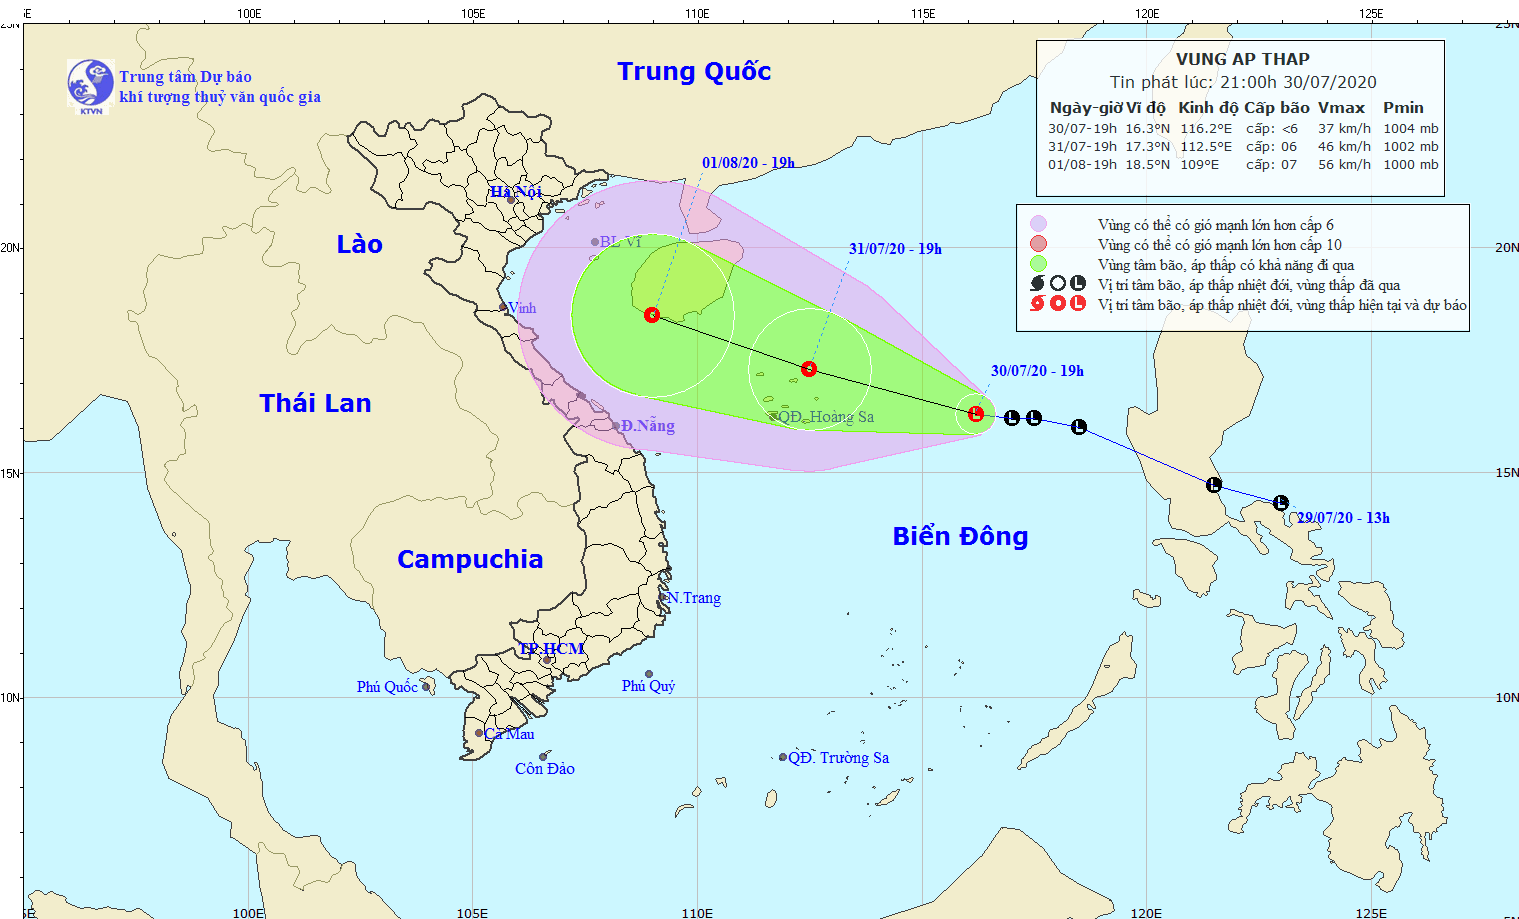 vietnam weather august 1 tropical depression to become storm bringing heavy rains across country